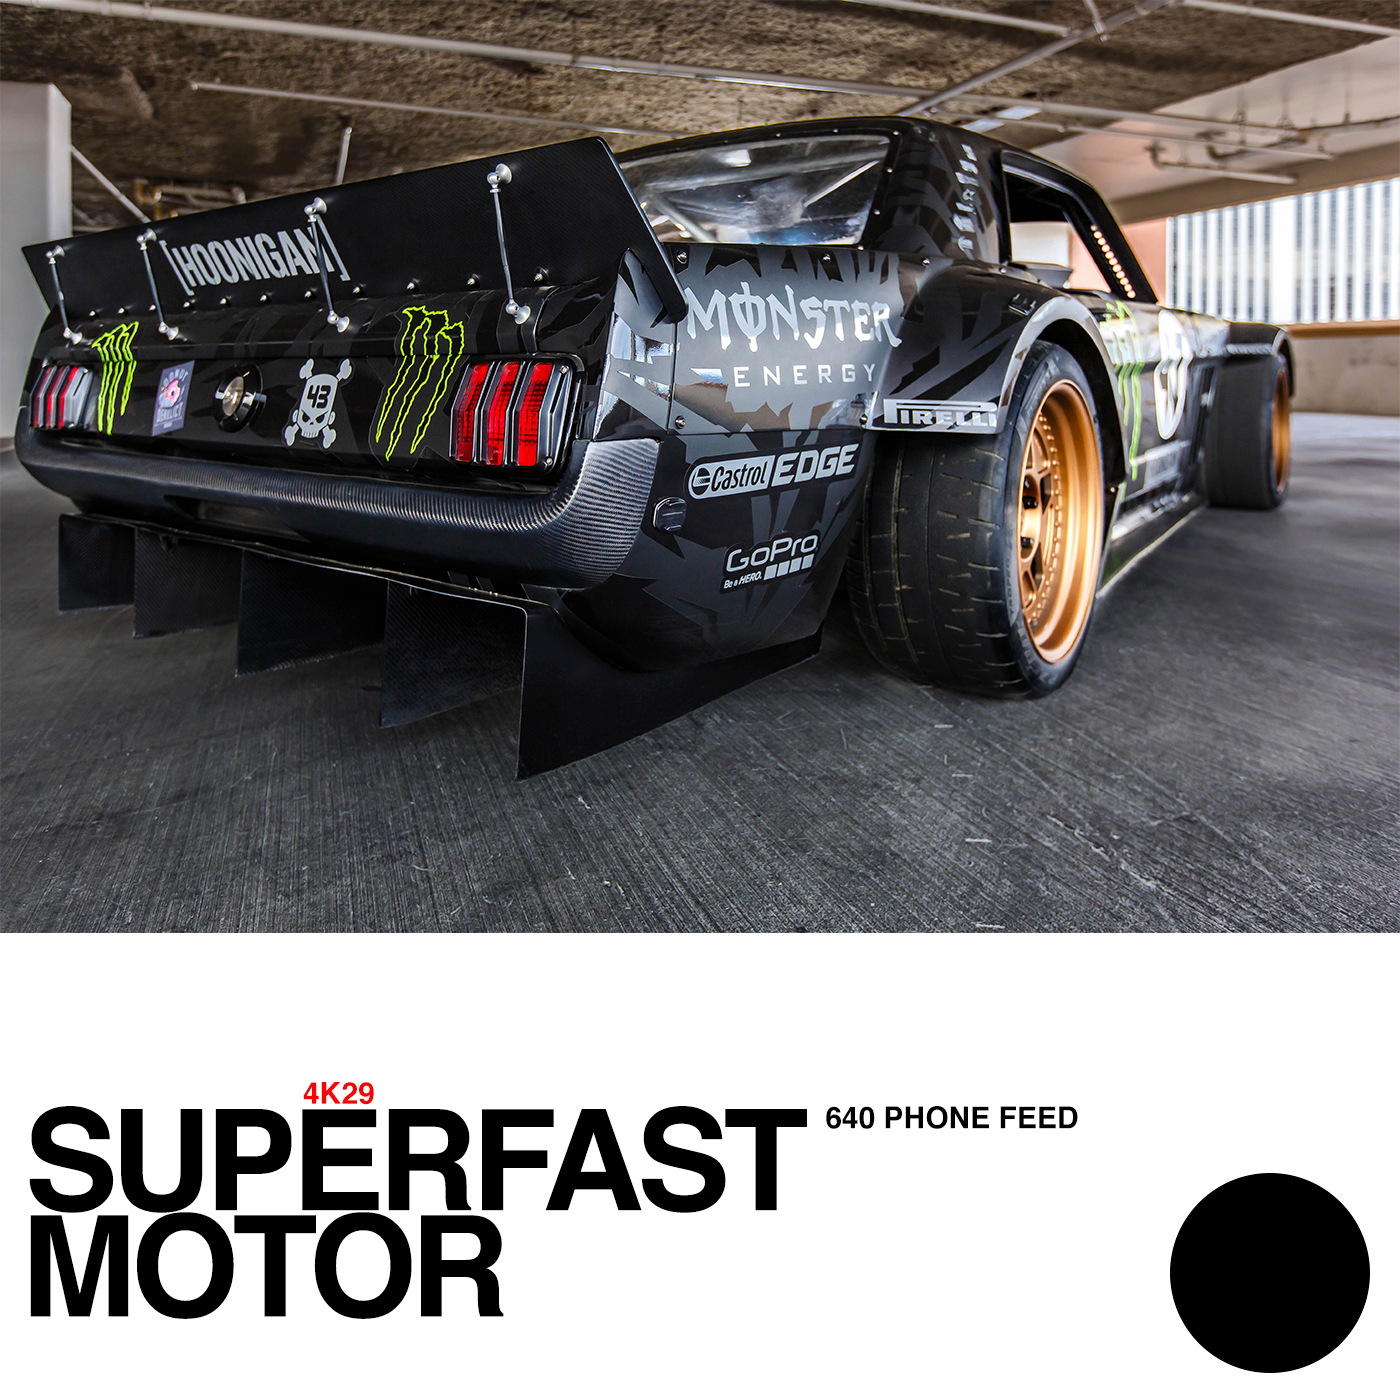 SUPERFAST MOTOR 4K29 MOBILE640